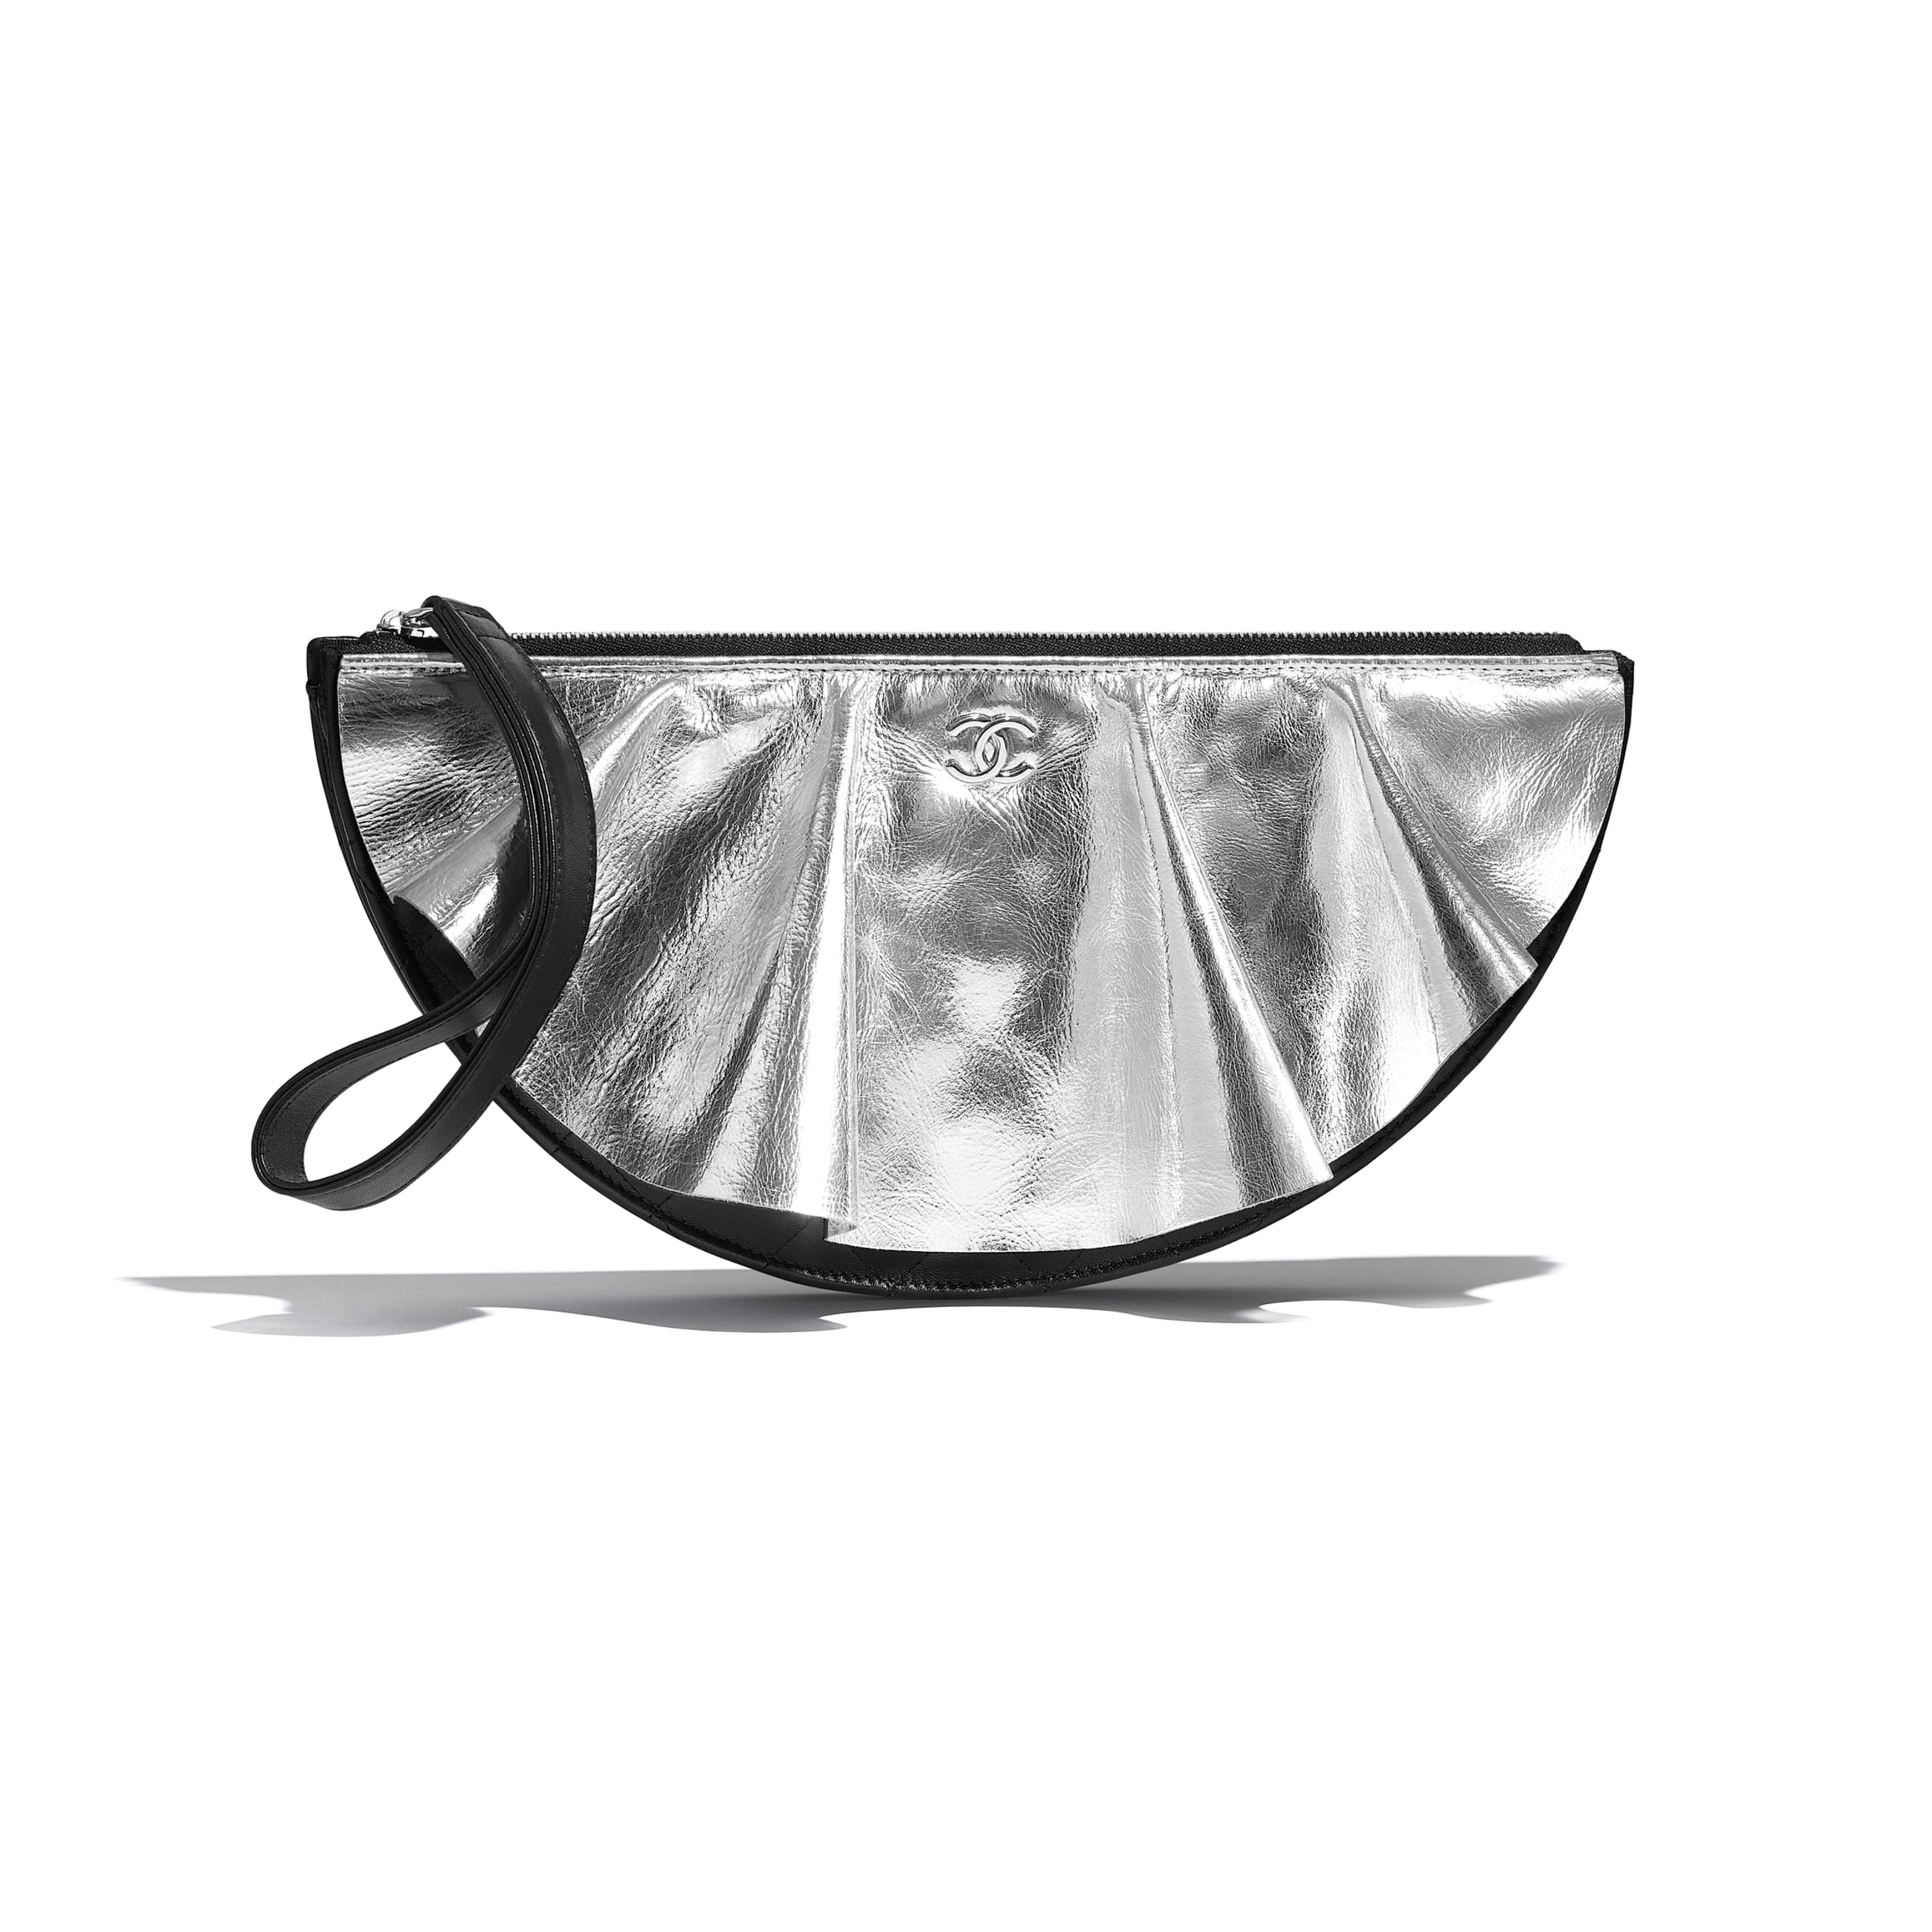 Clutch - Black, Silver & White - Lambskin, Metallic Goatskin & Silver-Tone Metal - Default view - see standard sized version